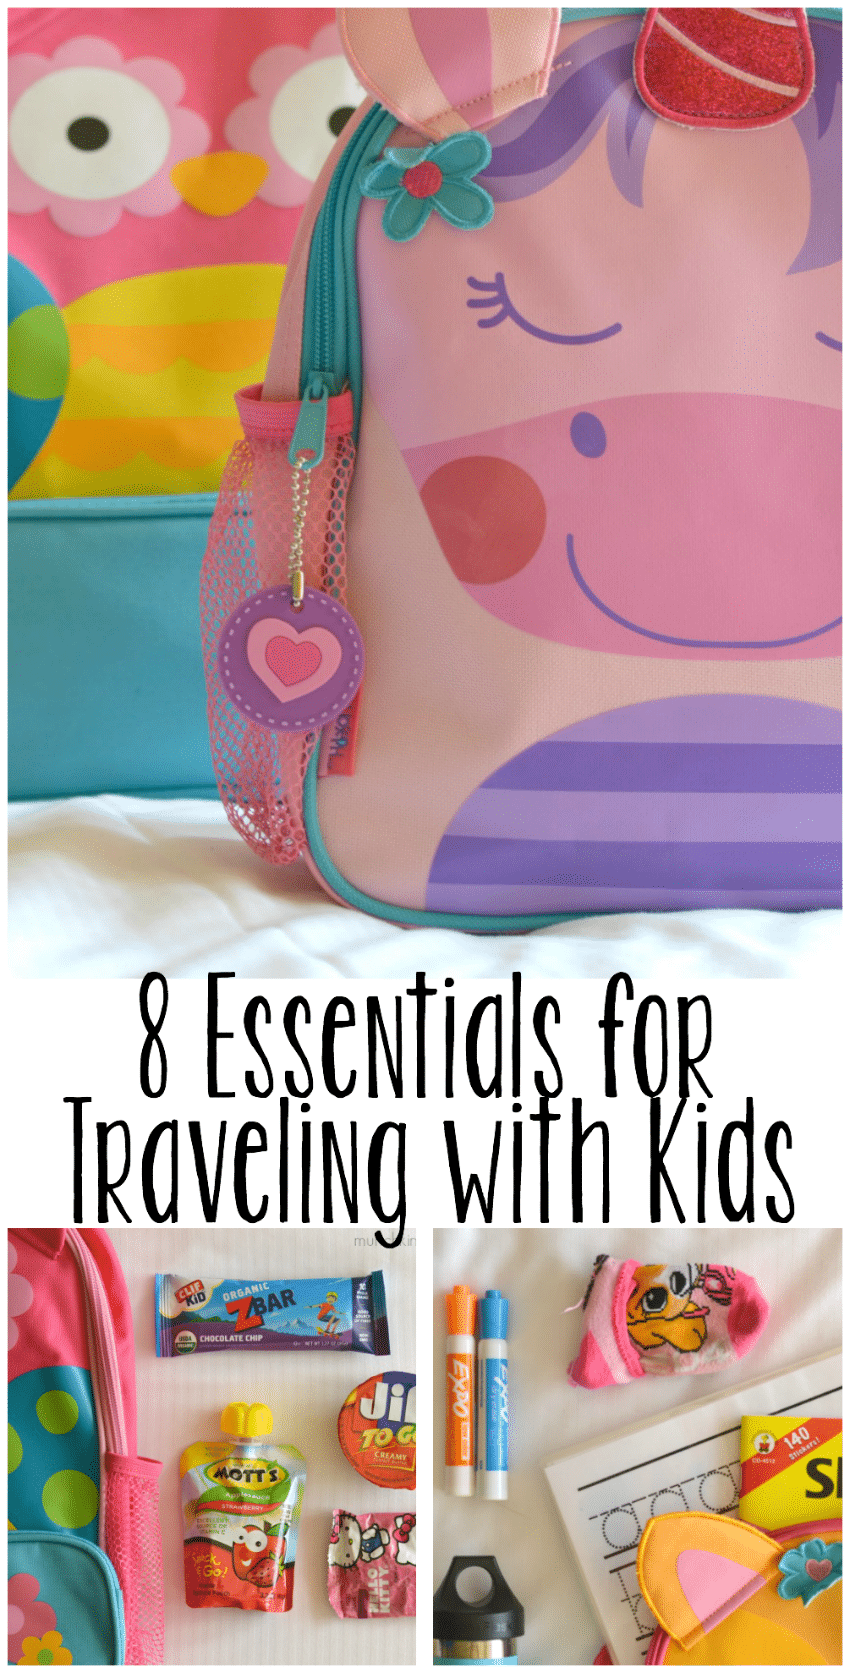 8 essentials for traveling with kids